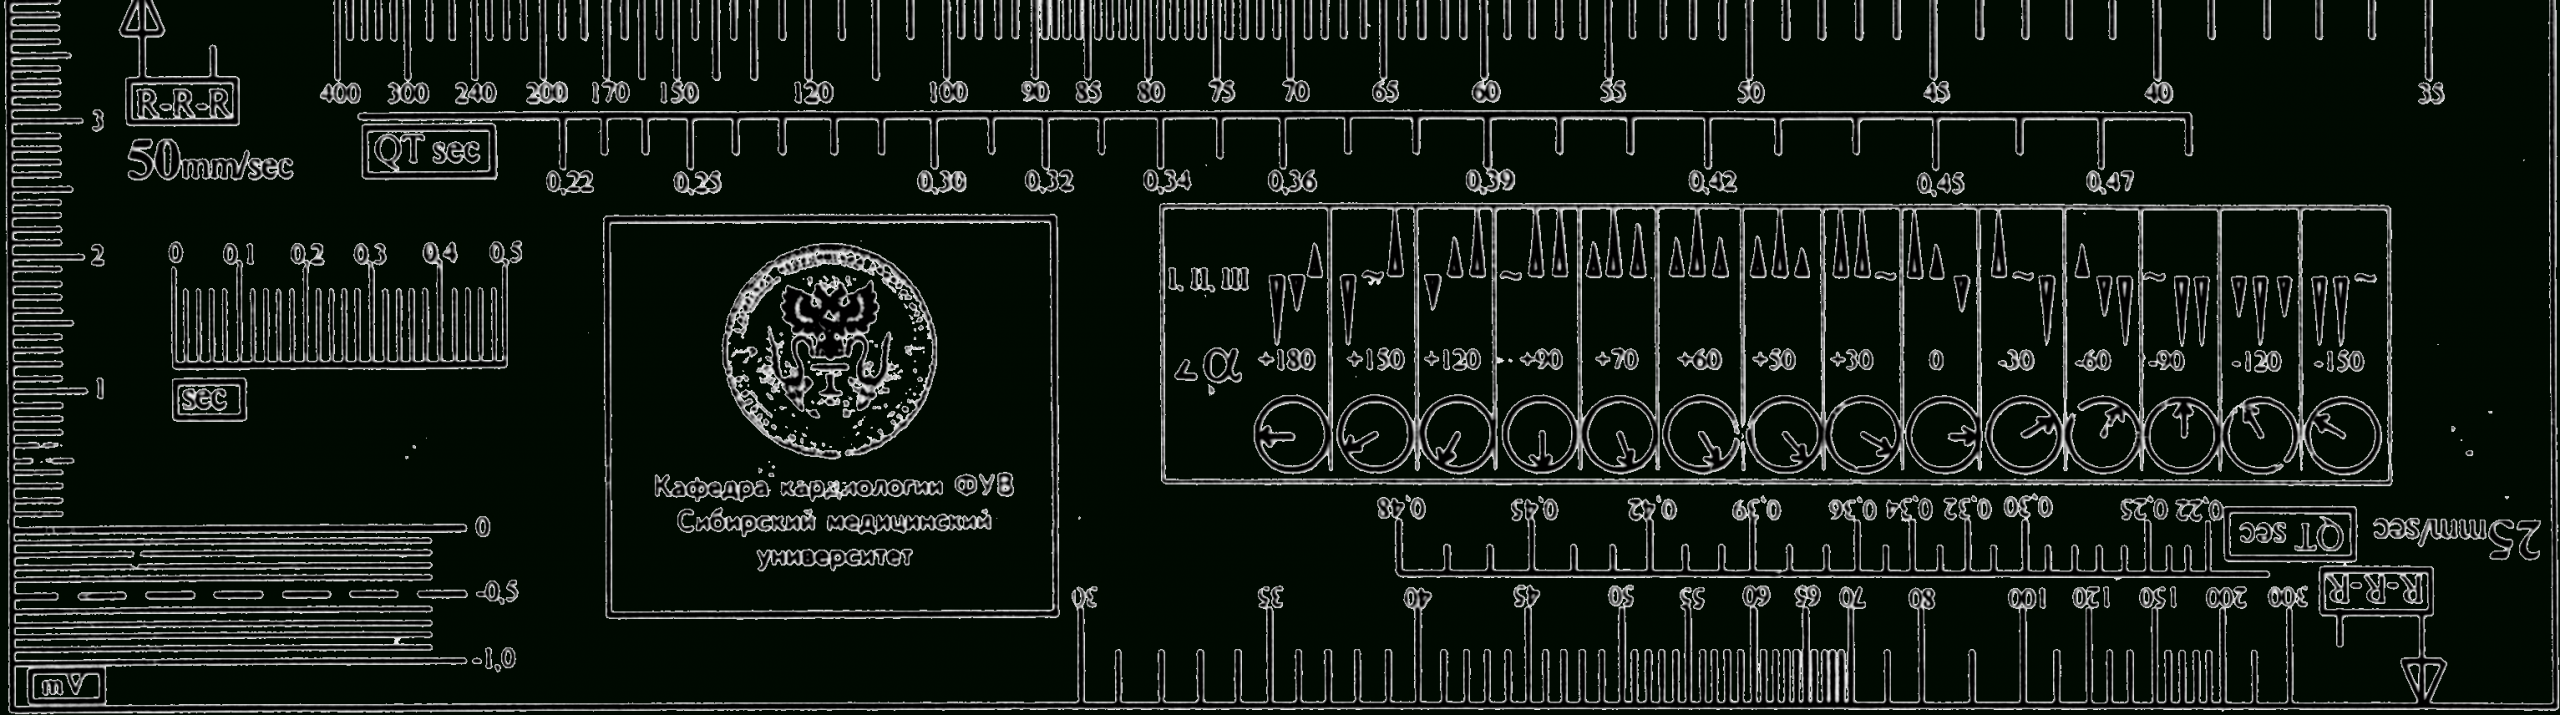 File:ecg Ruler - Wikimedia Commons